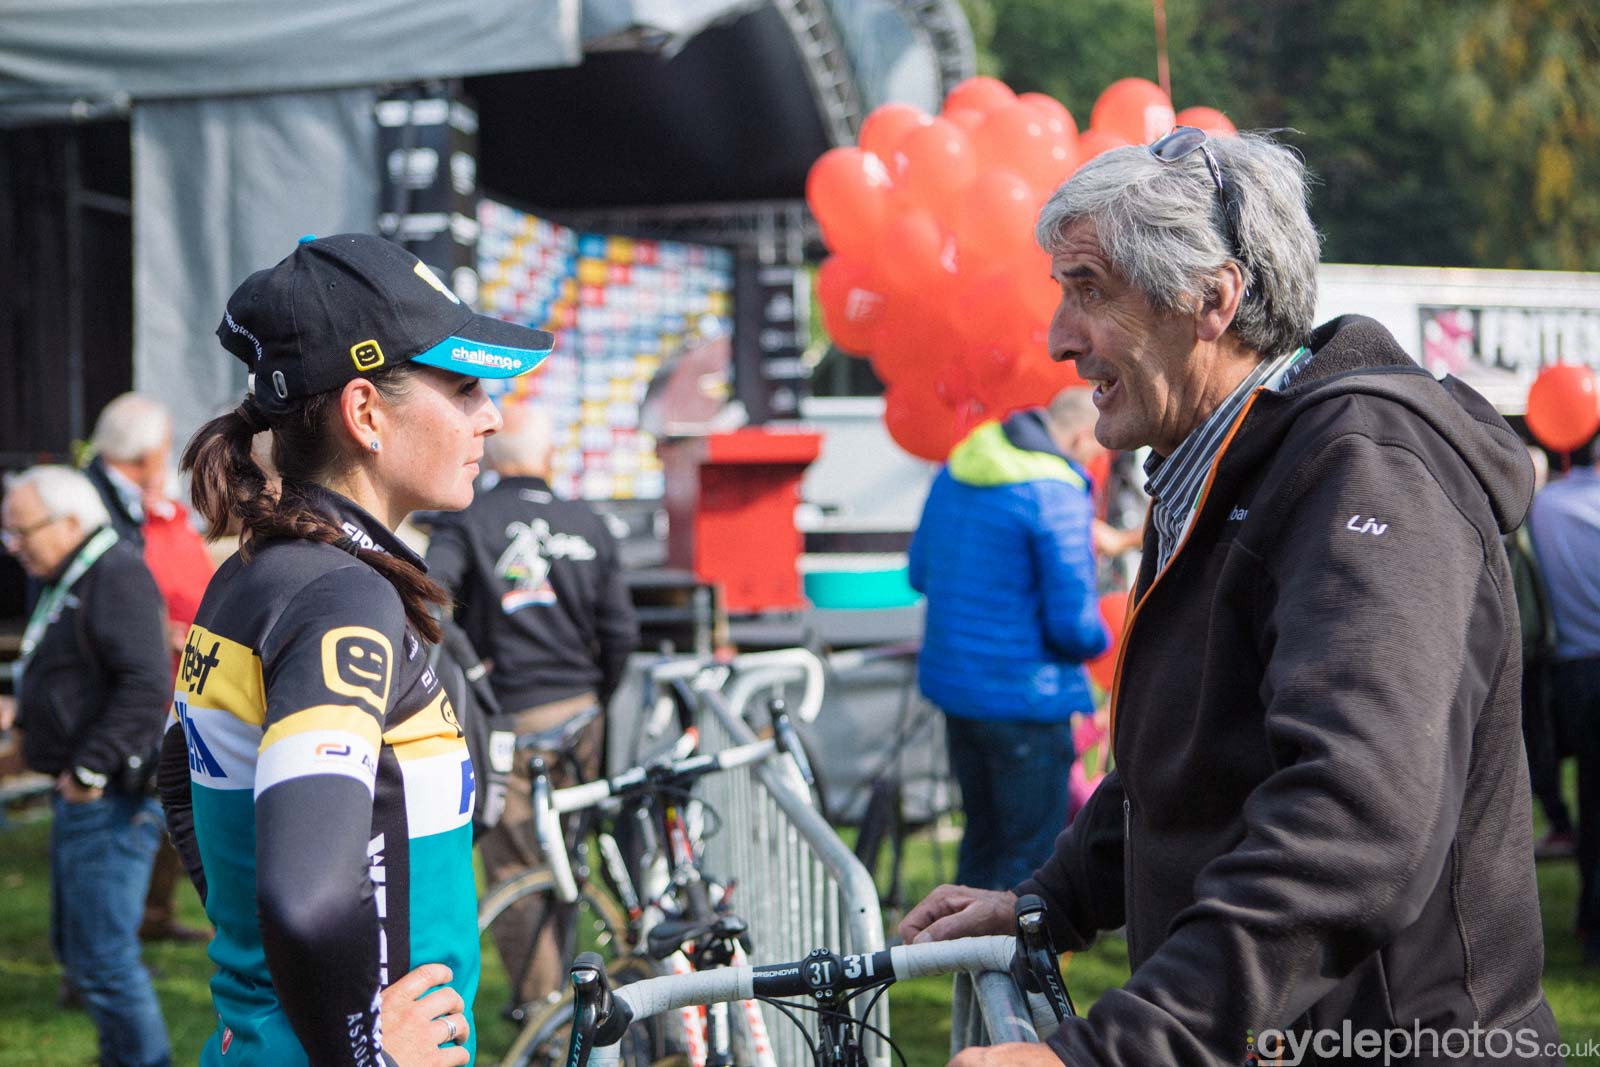 Nikki Harris talks to Papa Vos after of the women's Superprestige race in Gieten, The Netherlands. All rights reserved. �Balint Hamvas / Cyclephotos